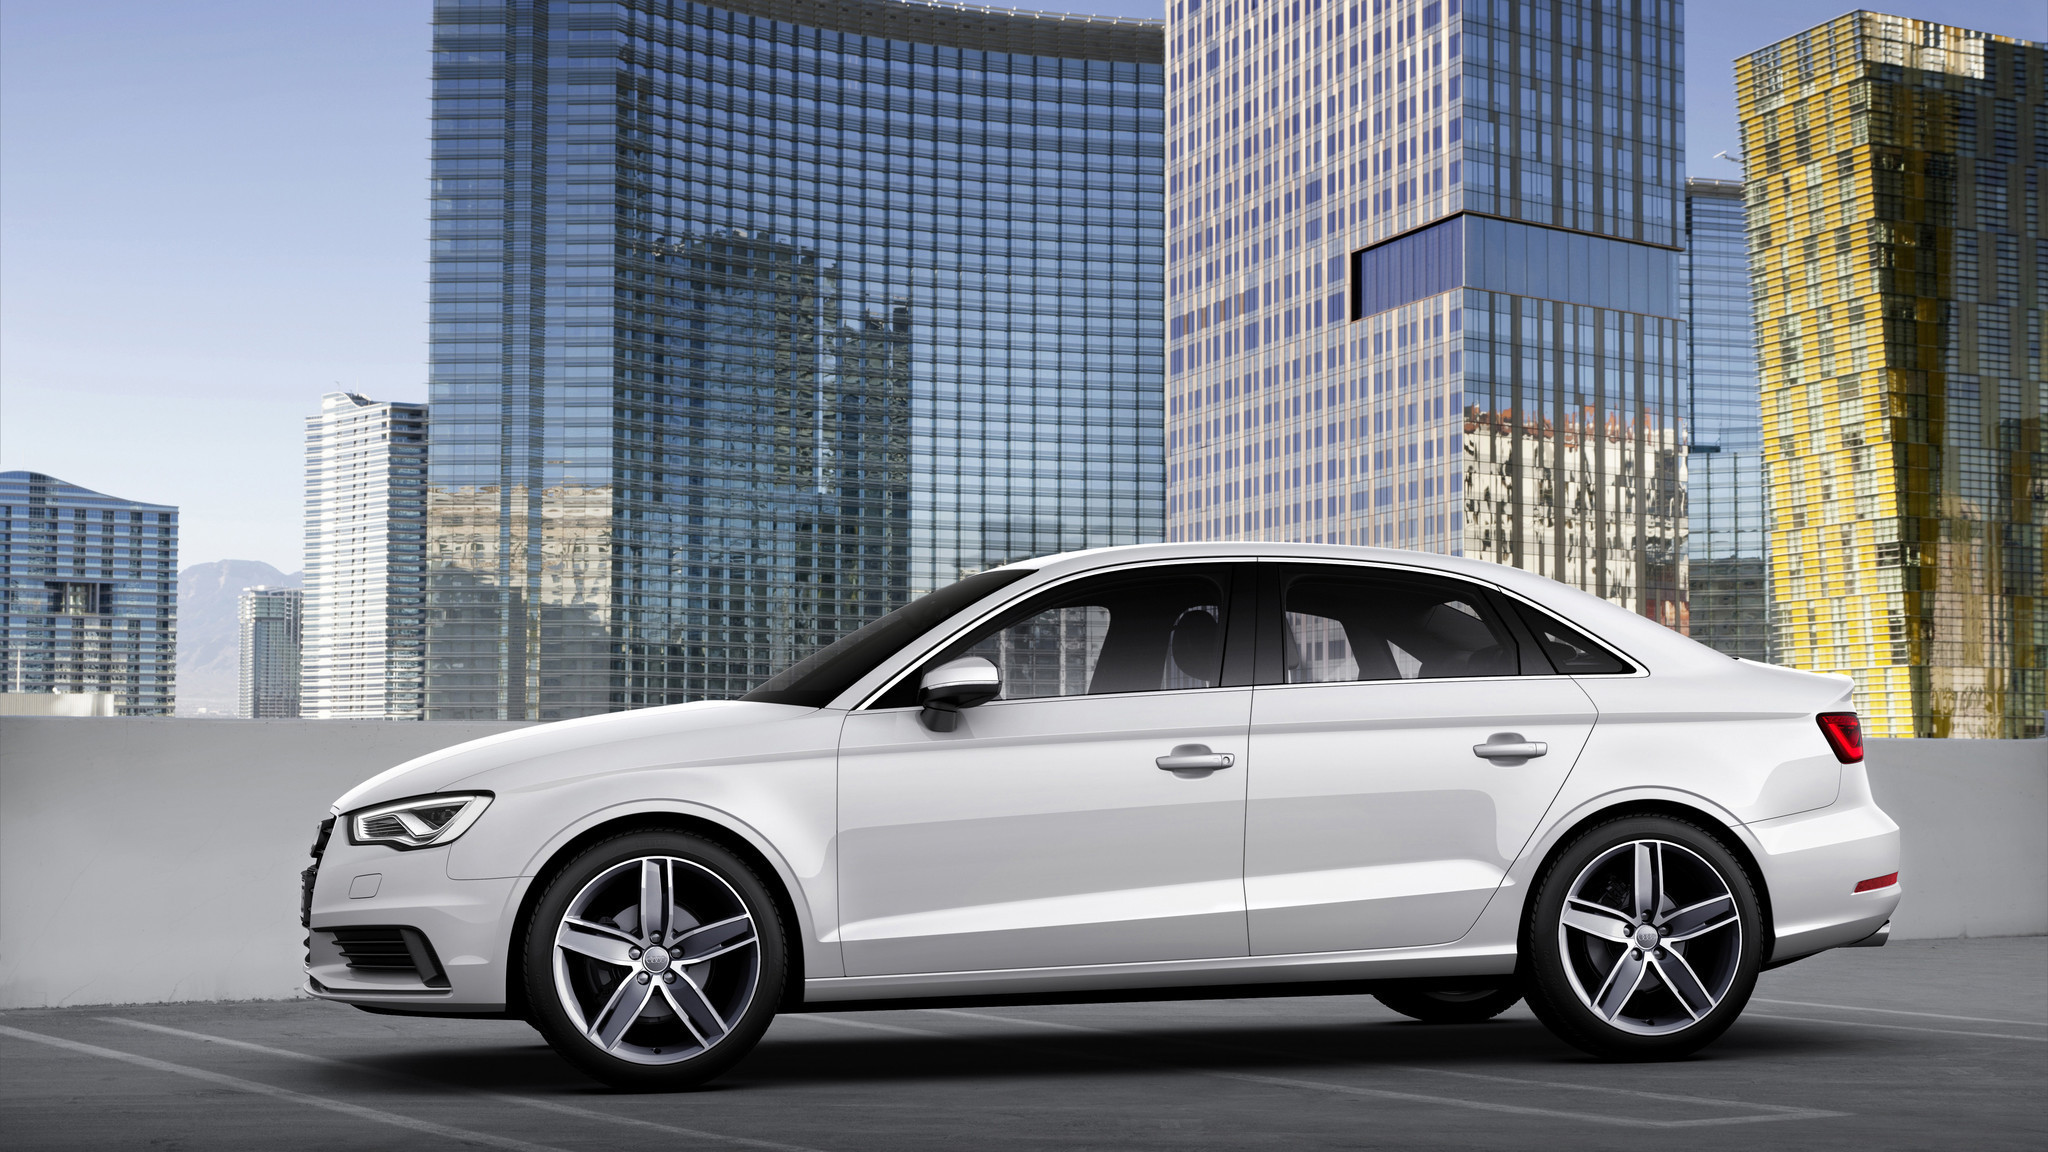 entry-level audi a3 is a study in serenity - la times